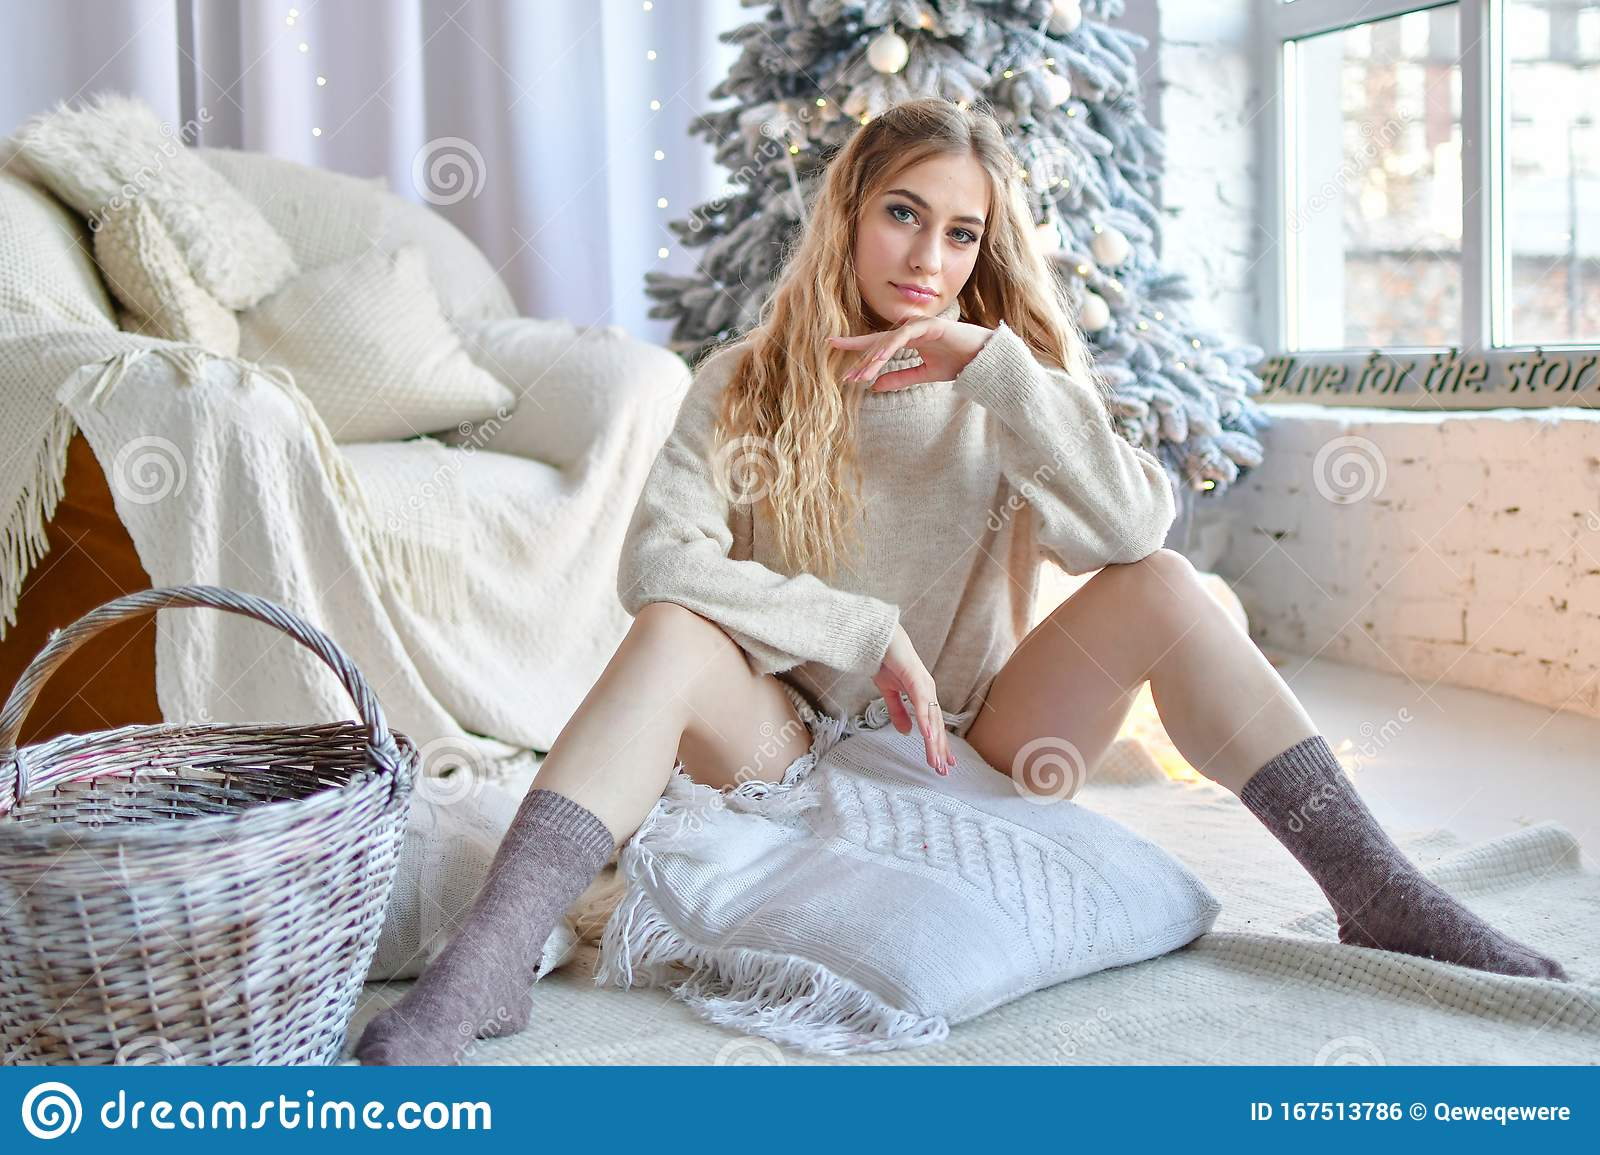 Merry christmas naked girl Girl In Sweatshirt And Panties In Front Of Her Christmas Tree Legs In Stockings And Laughs Stock Photo Image Of Naked Merry 167513786